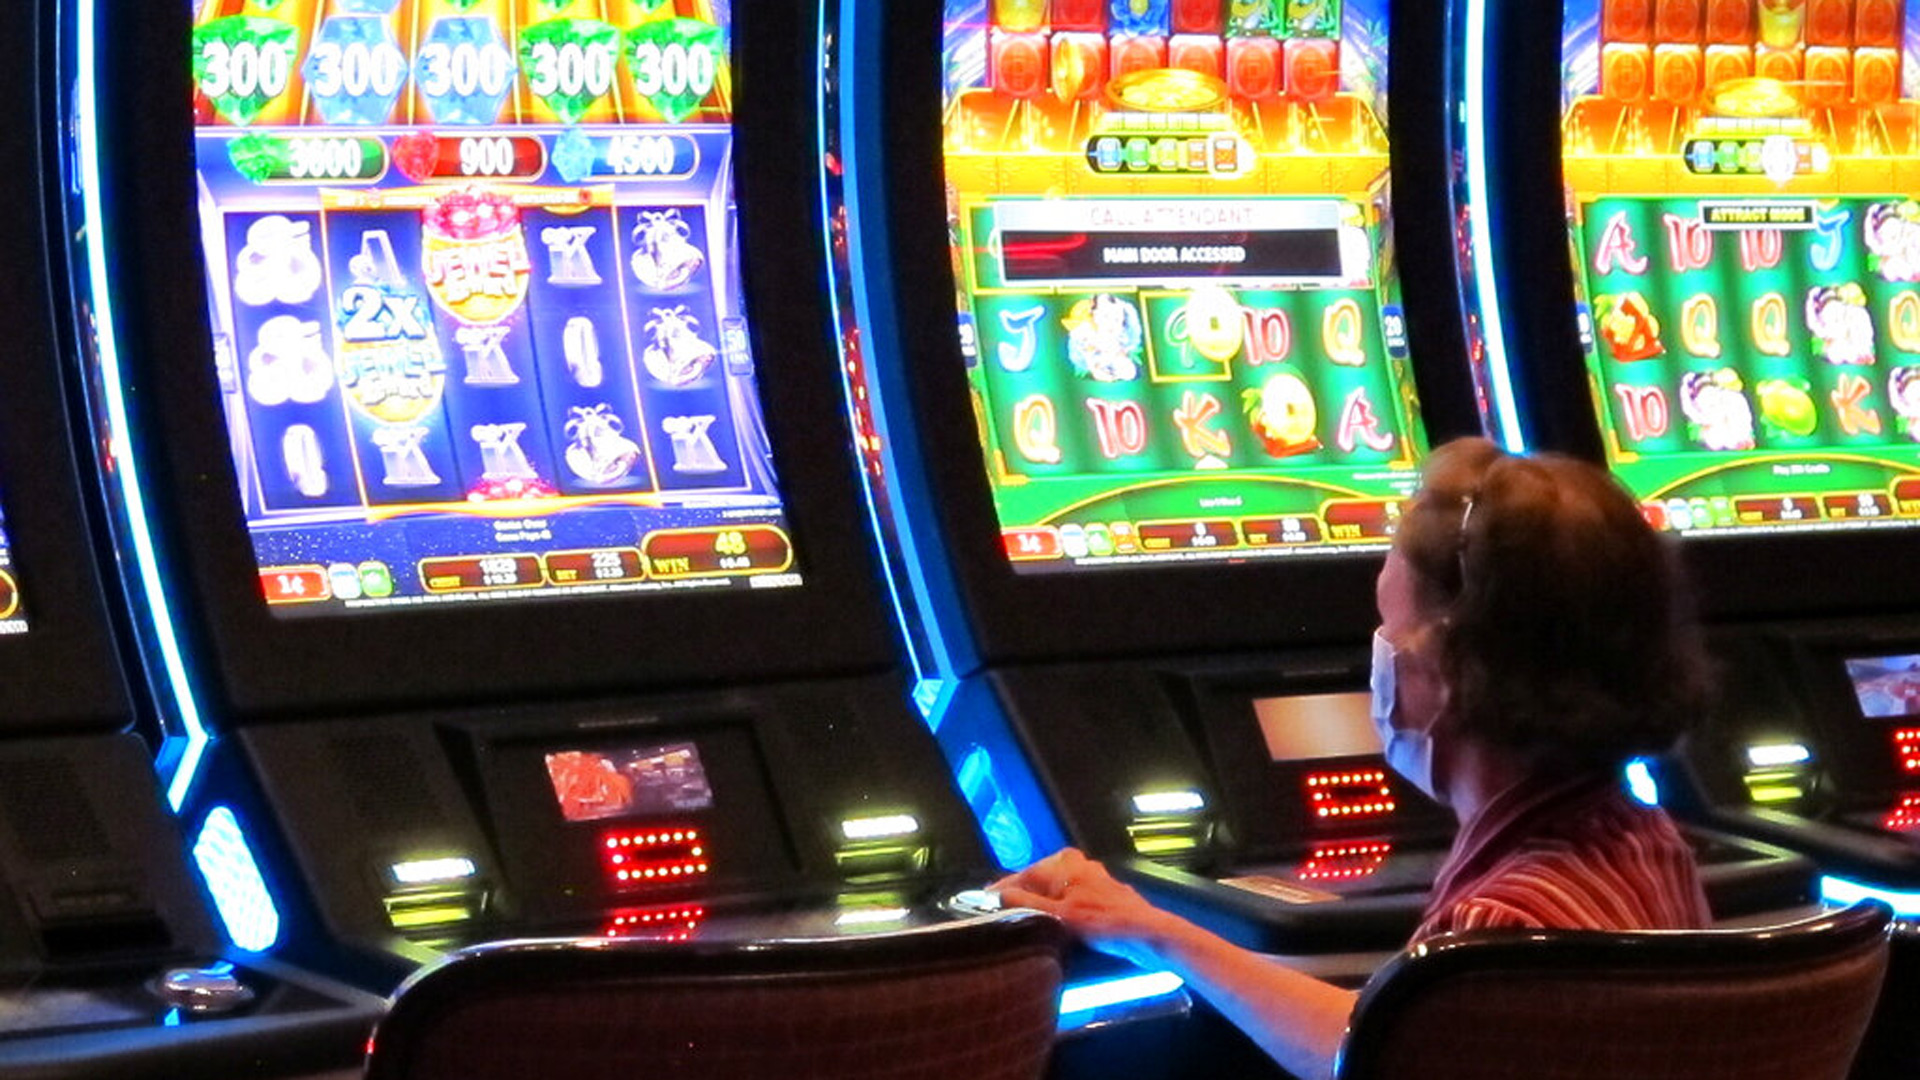 WKRG | Jackpot! Expansion of gambling in the US wins big at polls